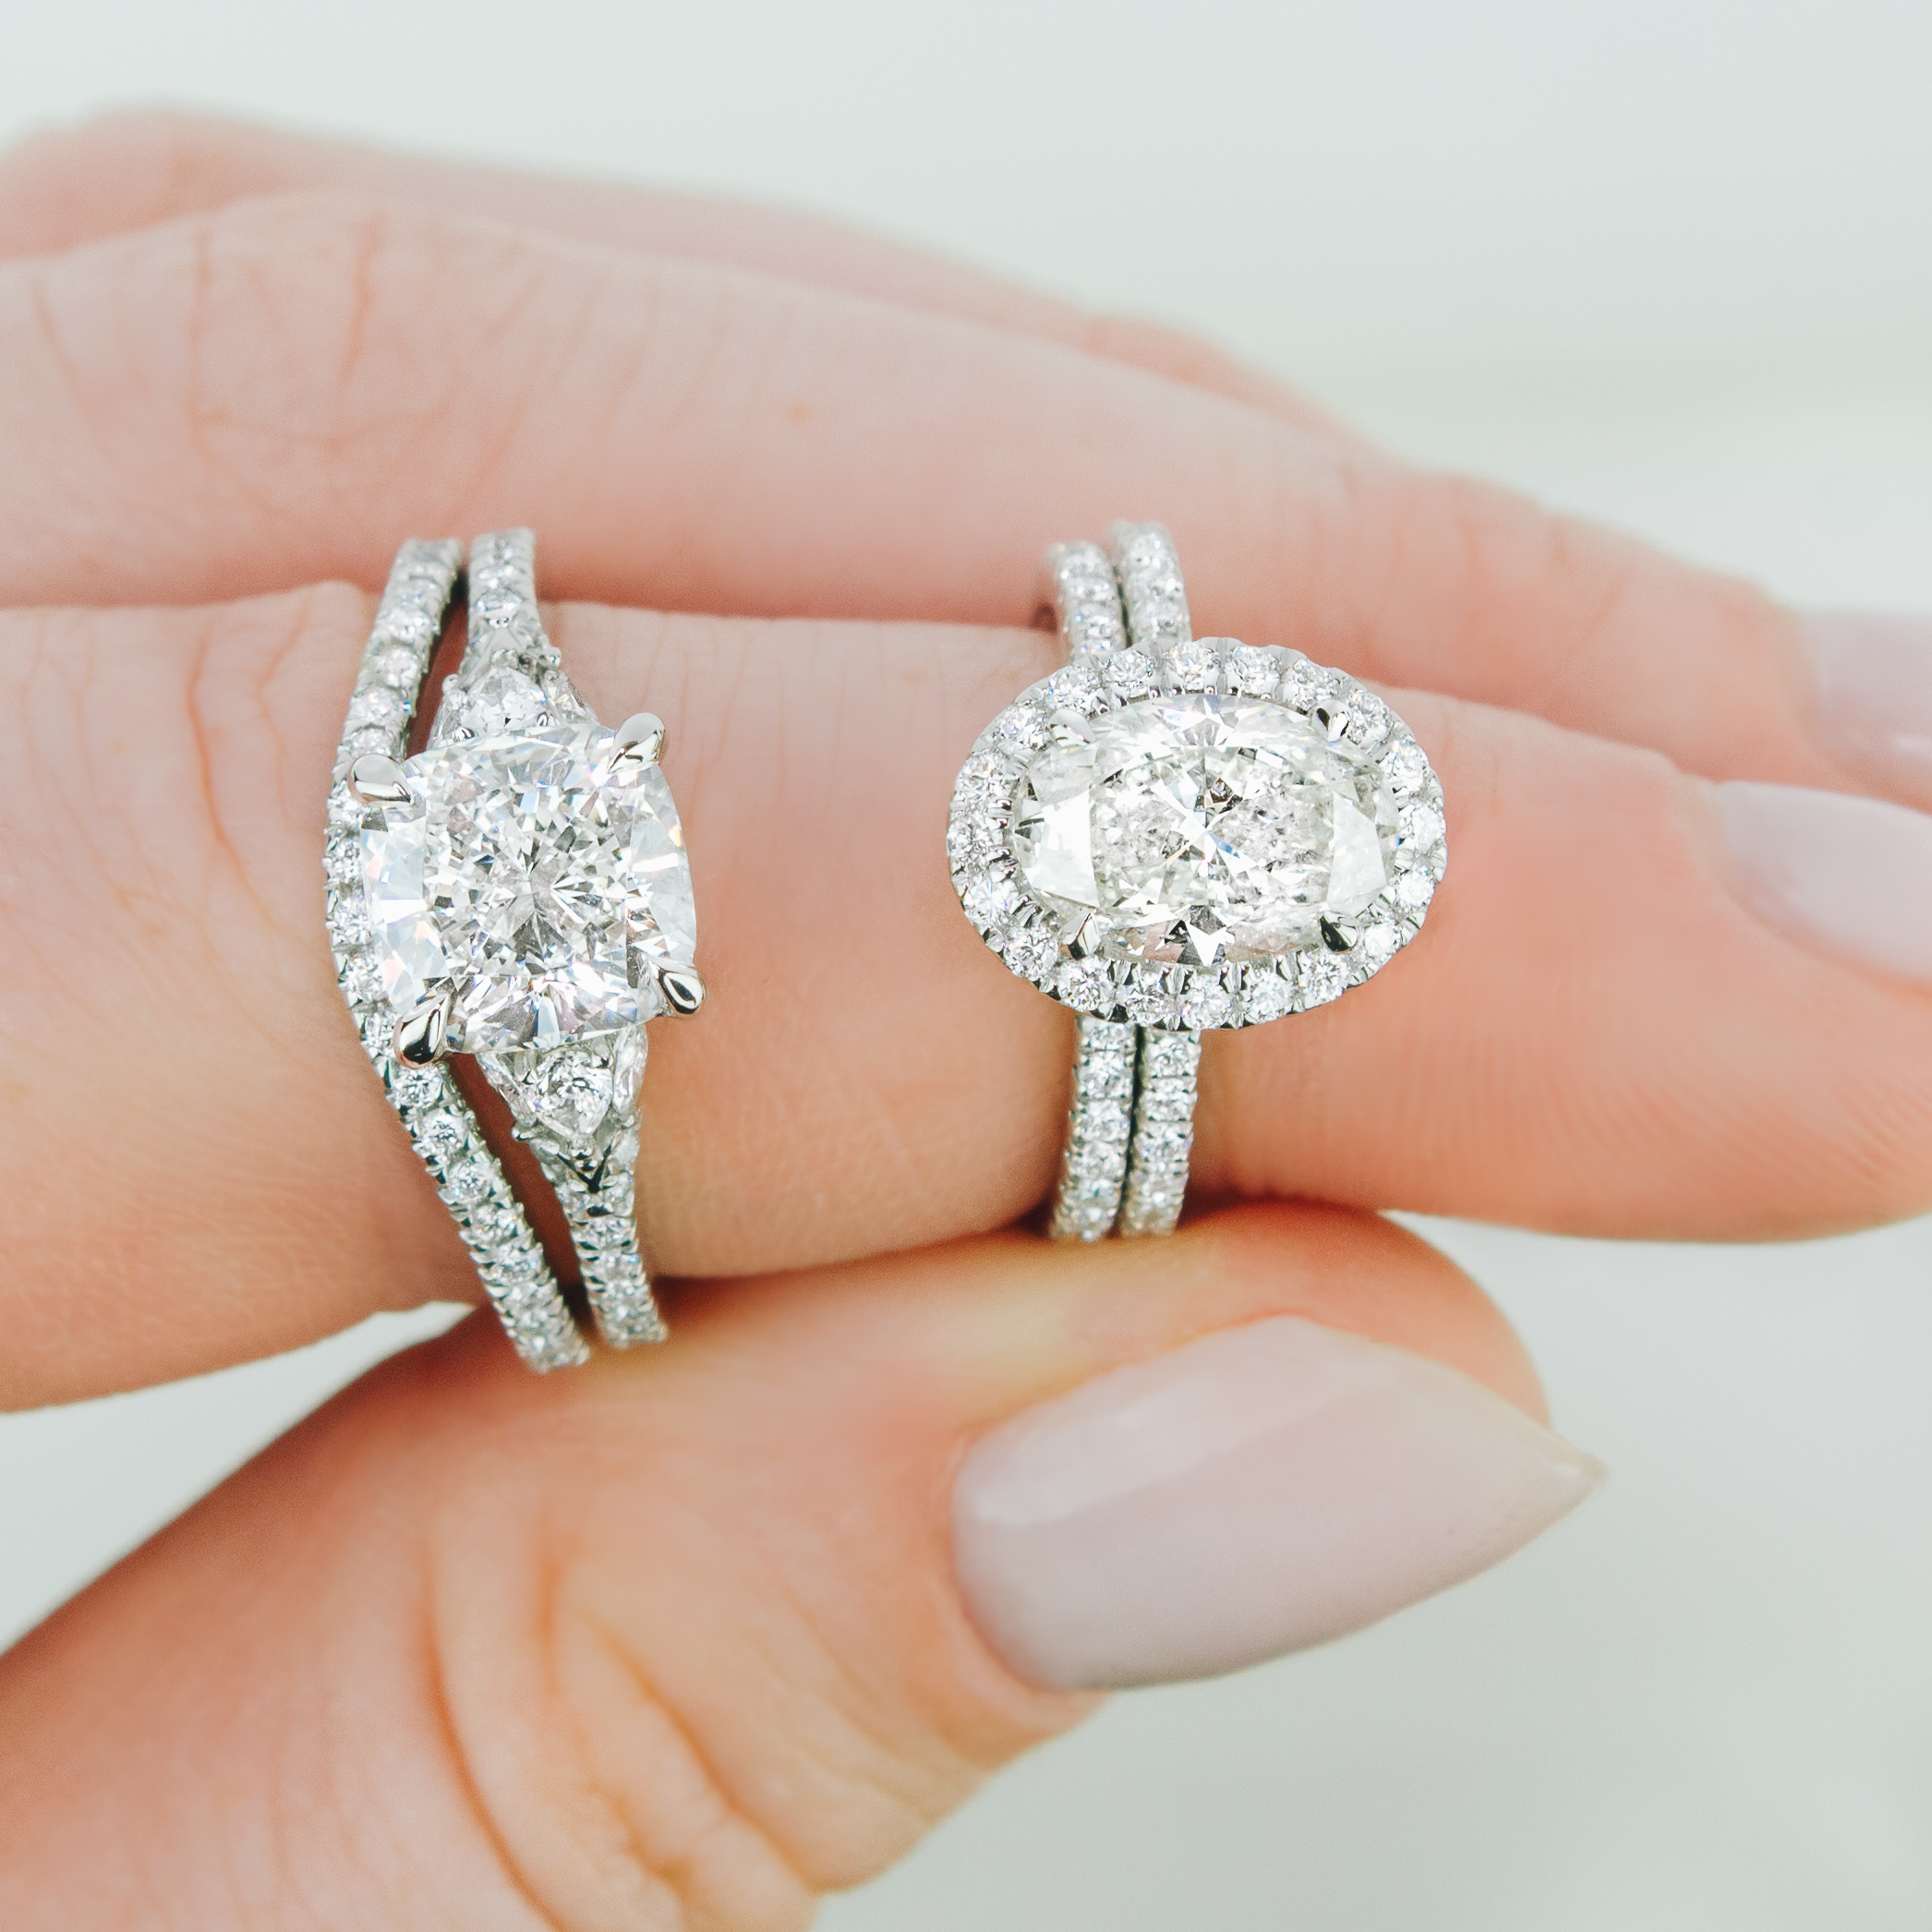 Unique Engagement Rings With Side Stones Intended For Best And Newest Round And Baguette Diamond Vintage Style Anniversary Bands In White Gold (View 17 of 25)